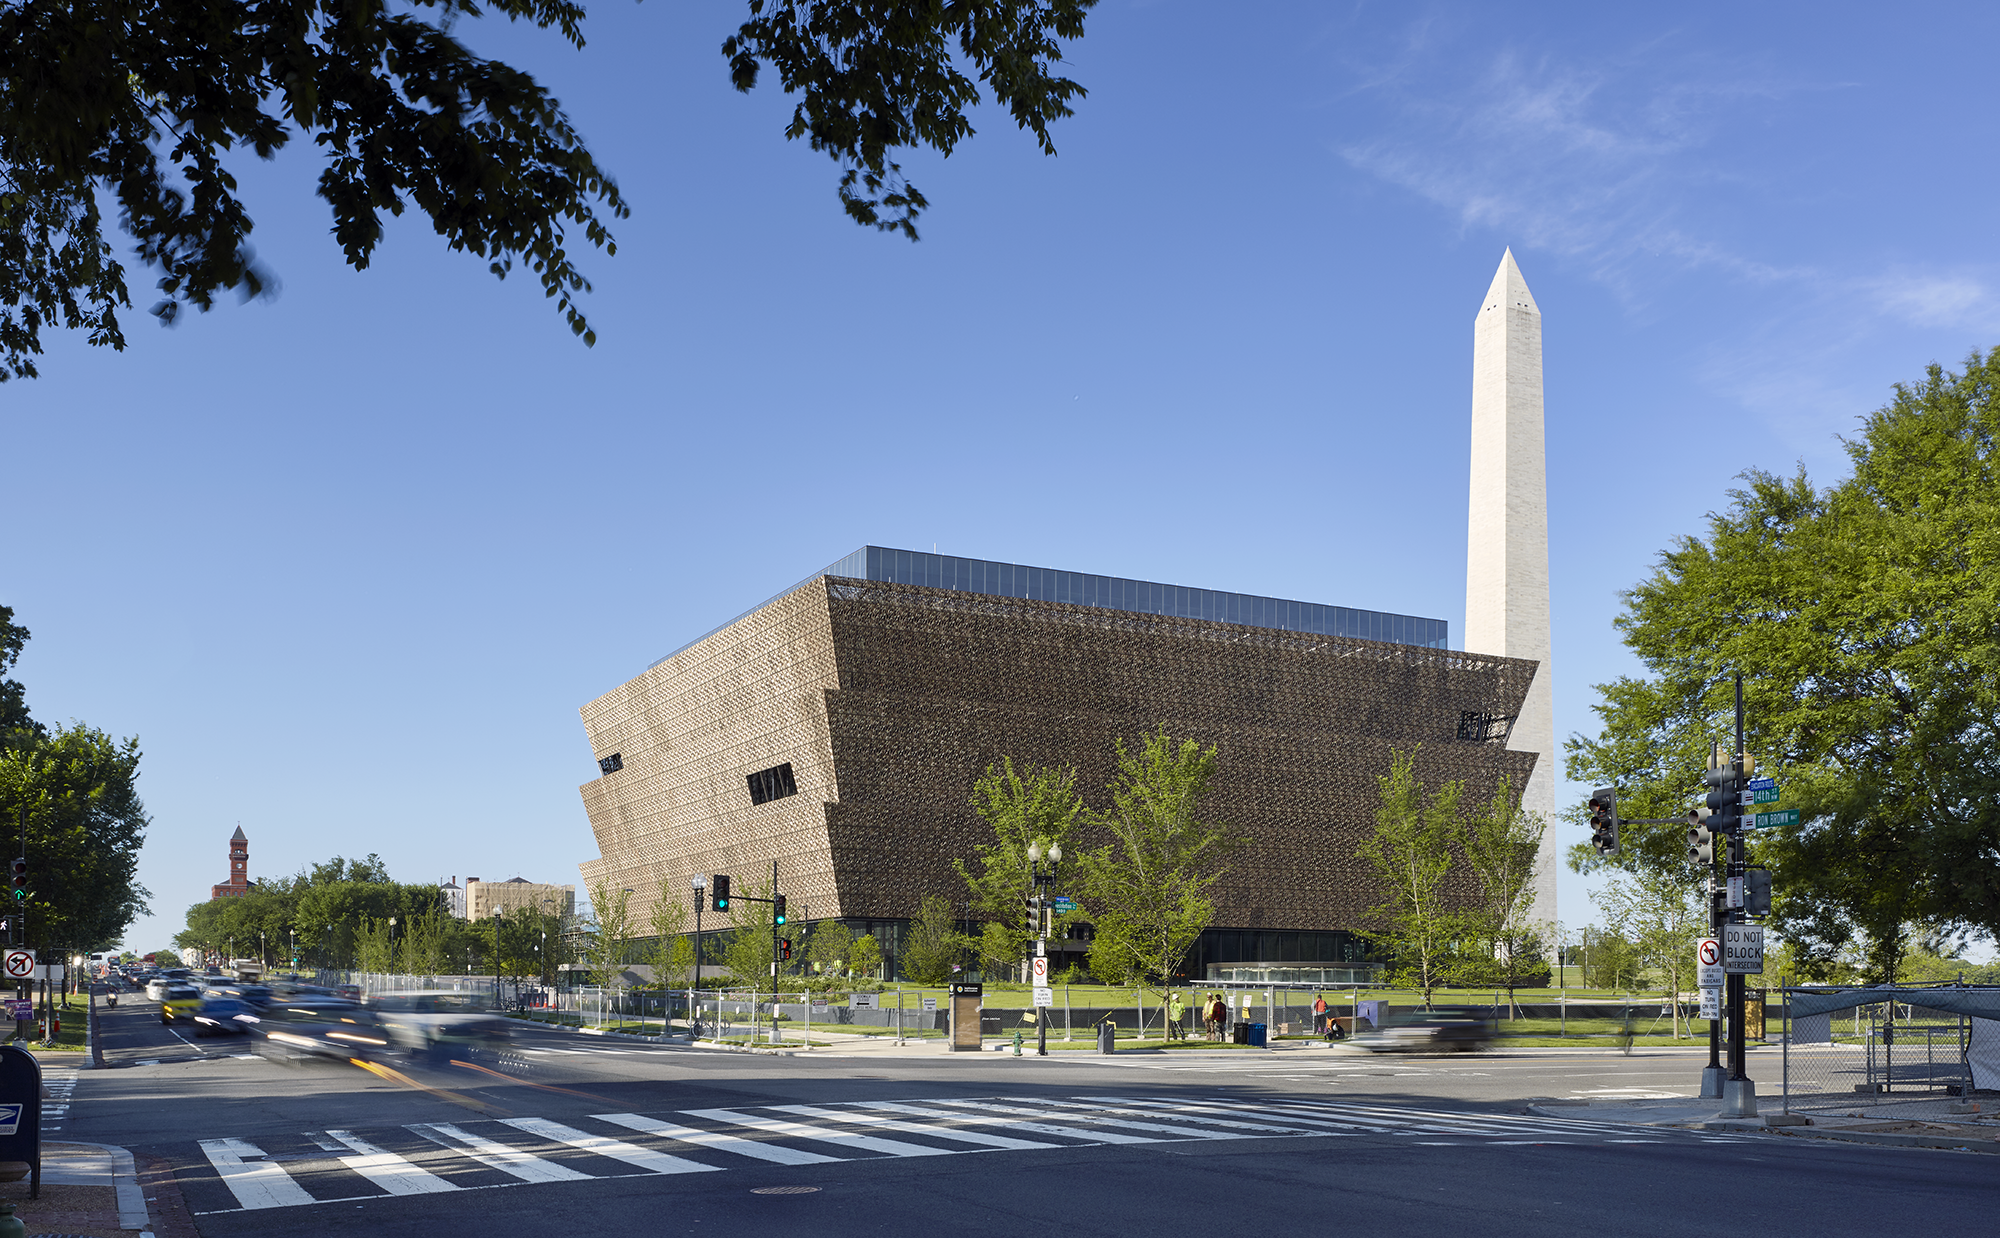 COURTESY NMAHC The newest Smithsonian museum, the African American Museum of History and Culture, which marks the first national museum exclusively dedicated to the documentation of African Americans, opened Sept. 24 with a three-day festival celebration on the National Mall.